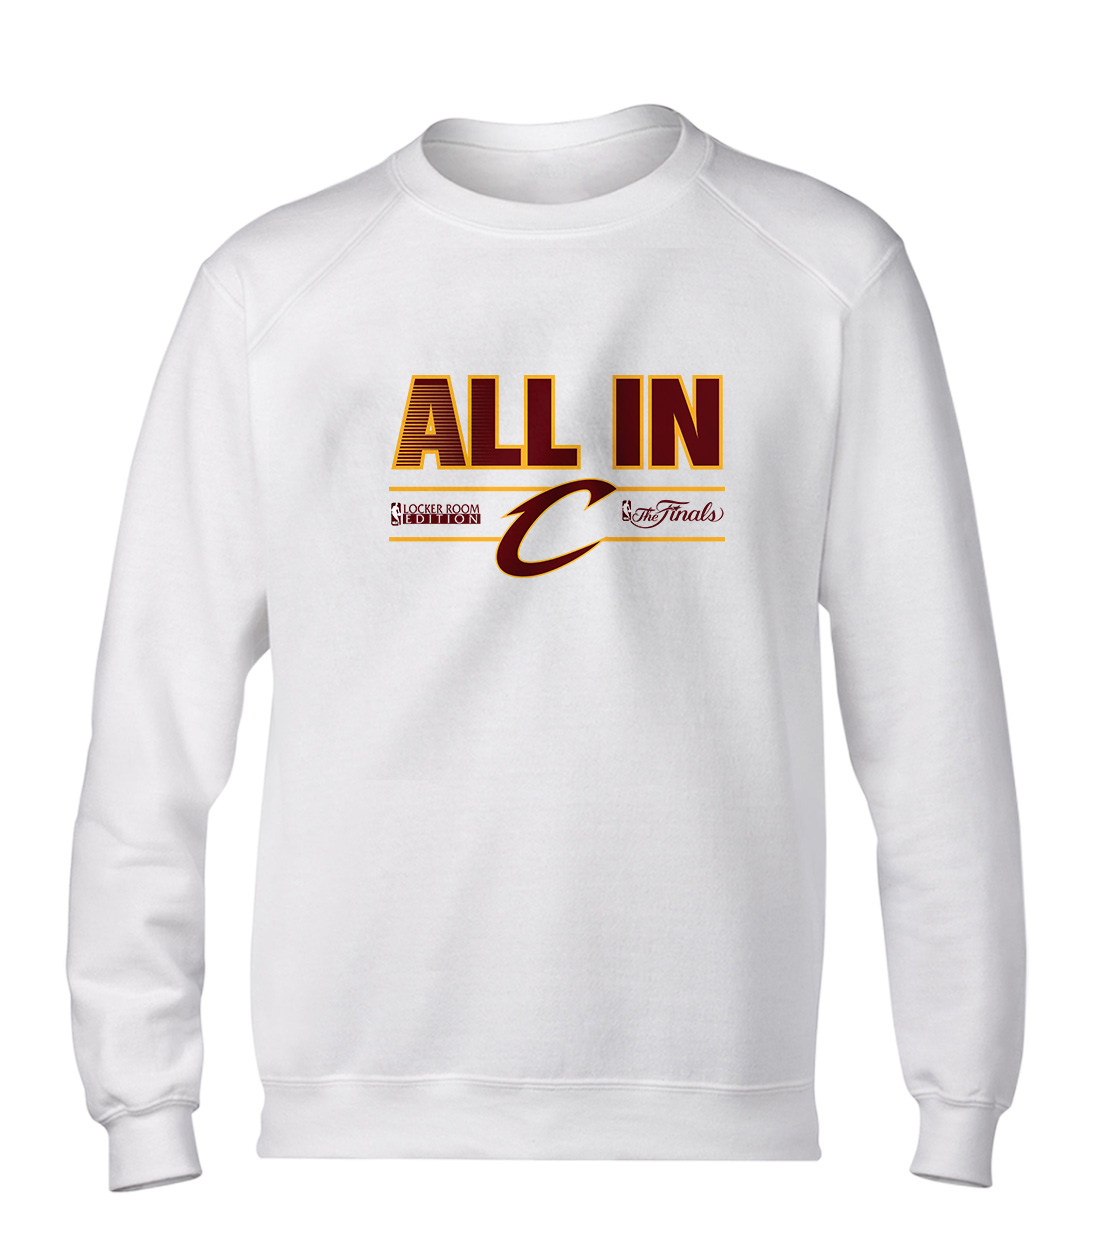 Cleveland Cavaliers Cleveland All-İn Basic (BSC-wht-58-NBA-CLE-ALL.IN)